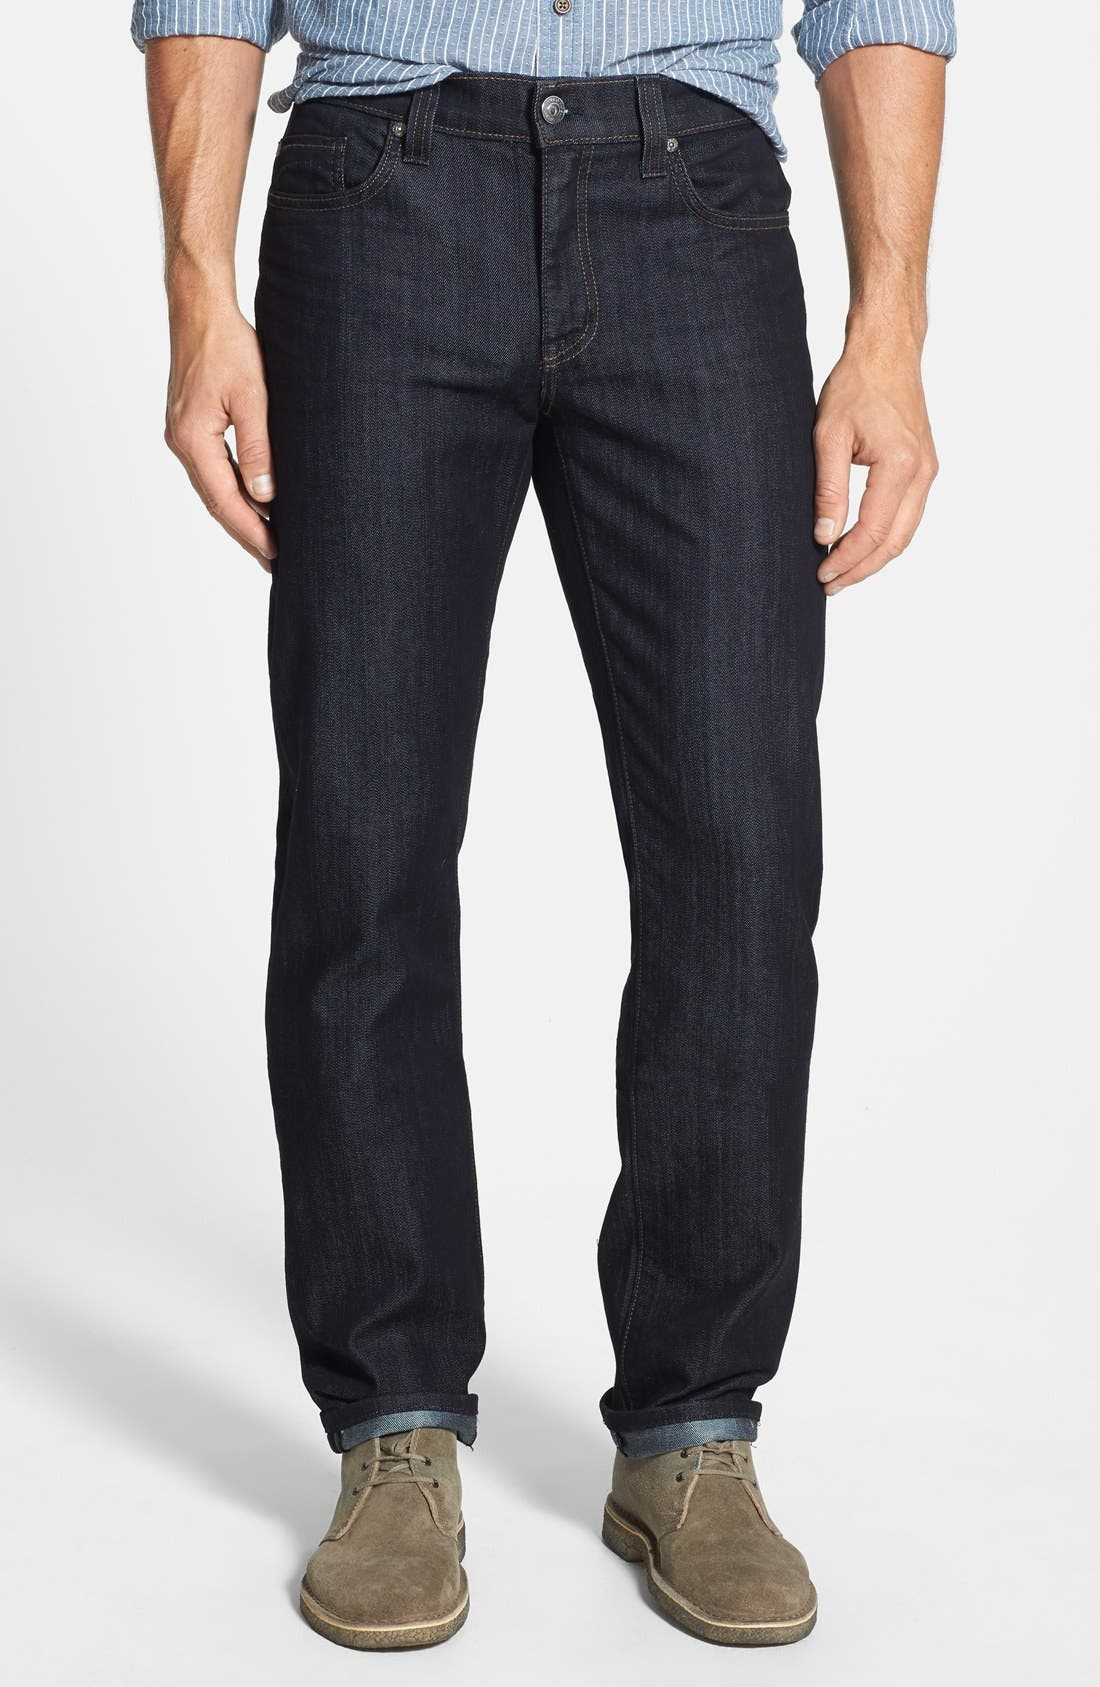 Fidelity Denim 50-11 Relaxed Fit Jeans (Revolution Rinse)